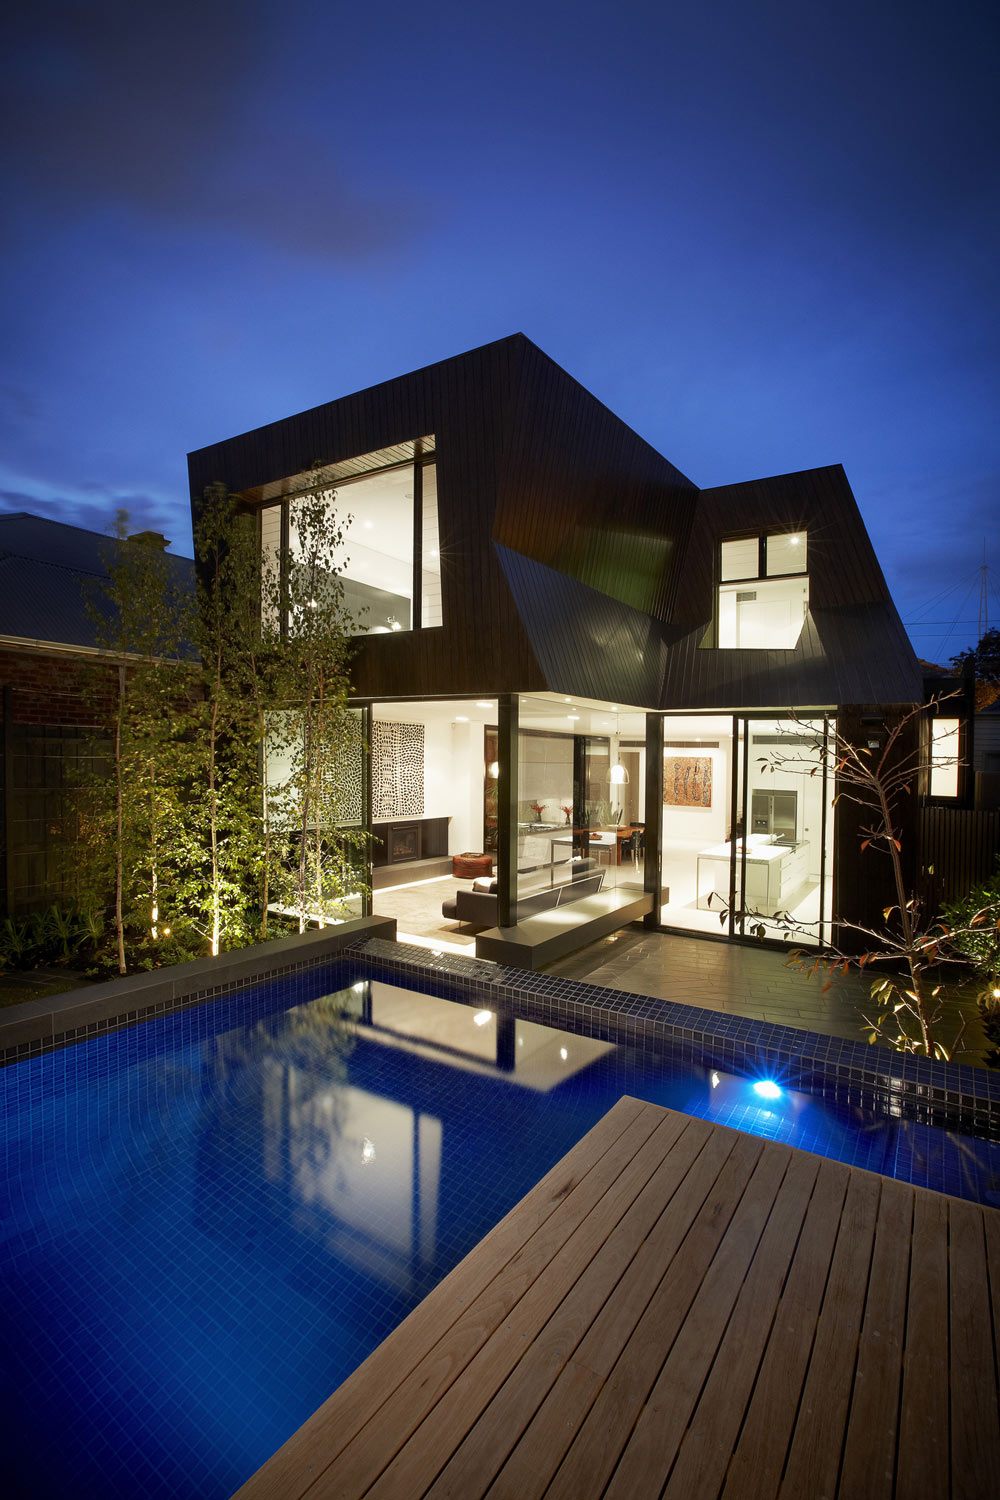 Enclave house in melbourne australia by bkk architects for Traditional and modern houses